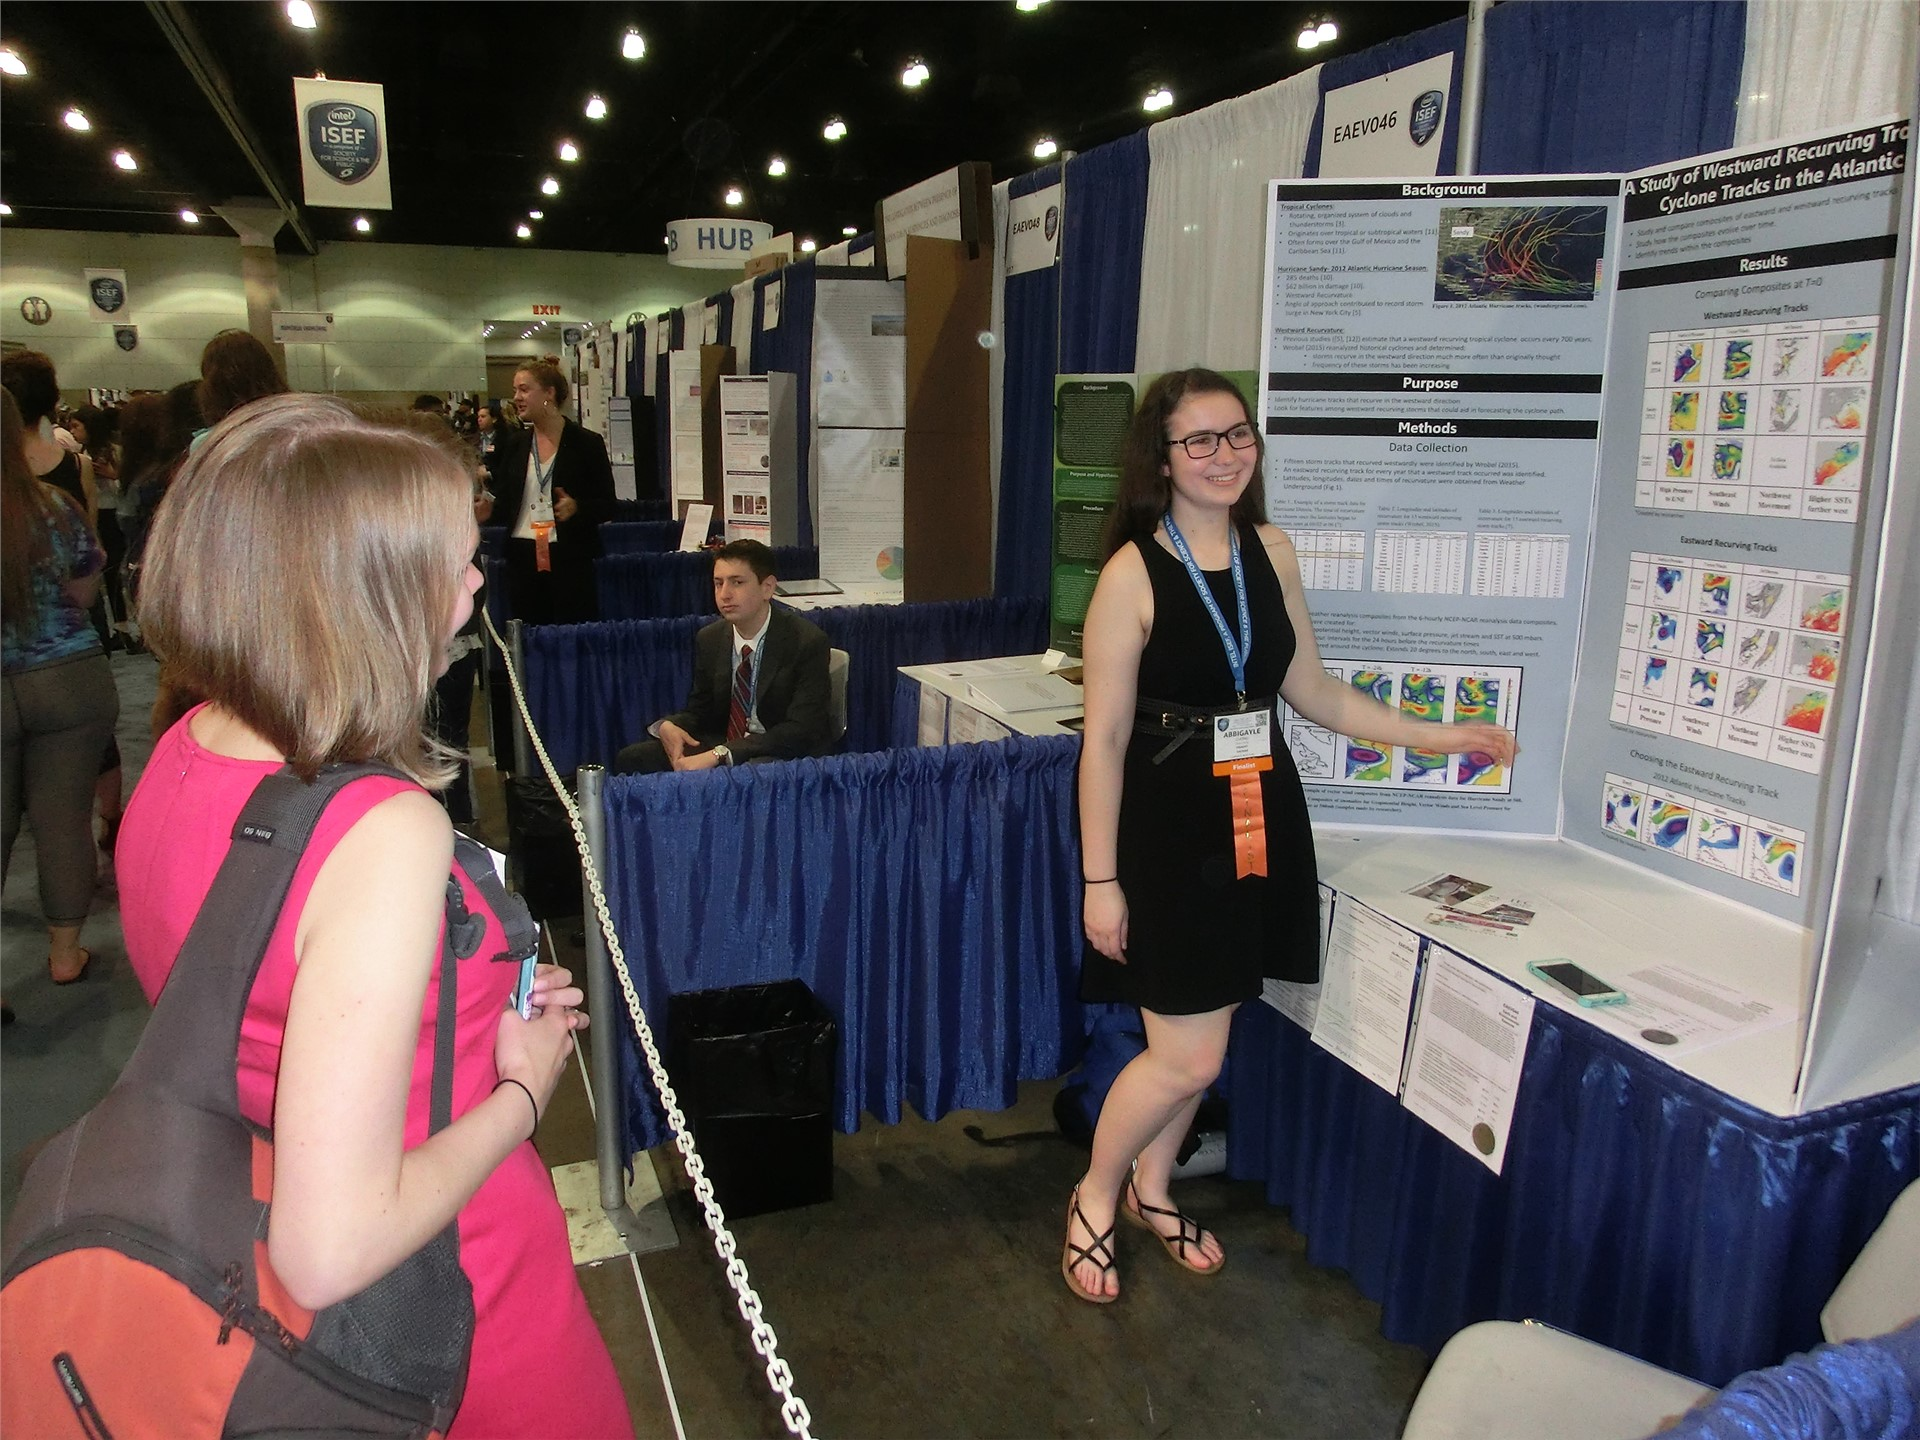 Day 6 - Commack at ISEF